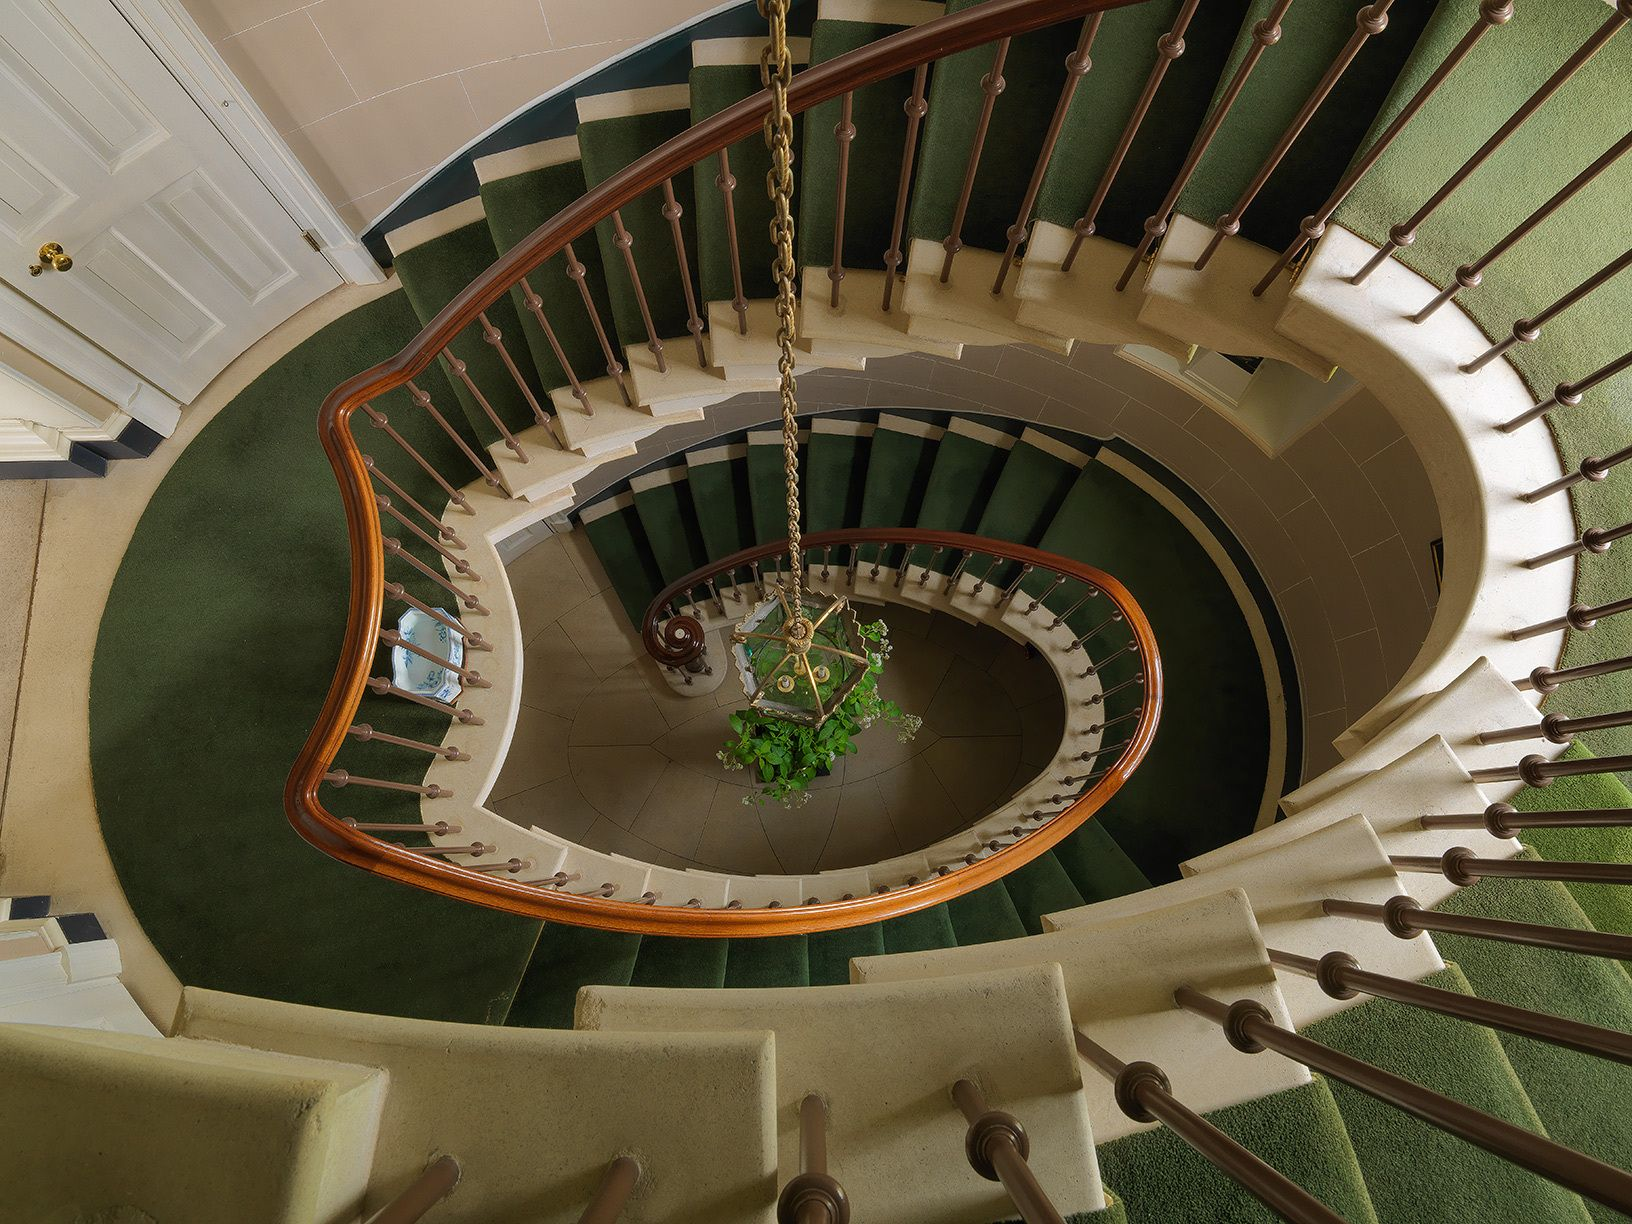 Henbury, downview of spiral staircase